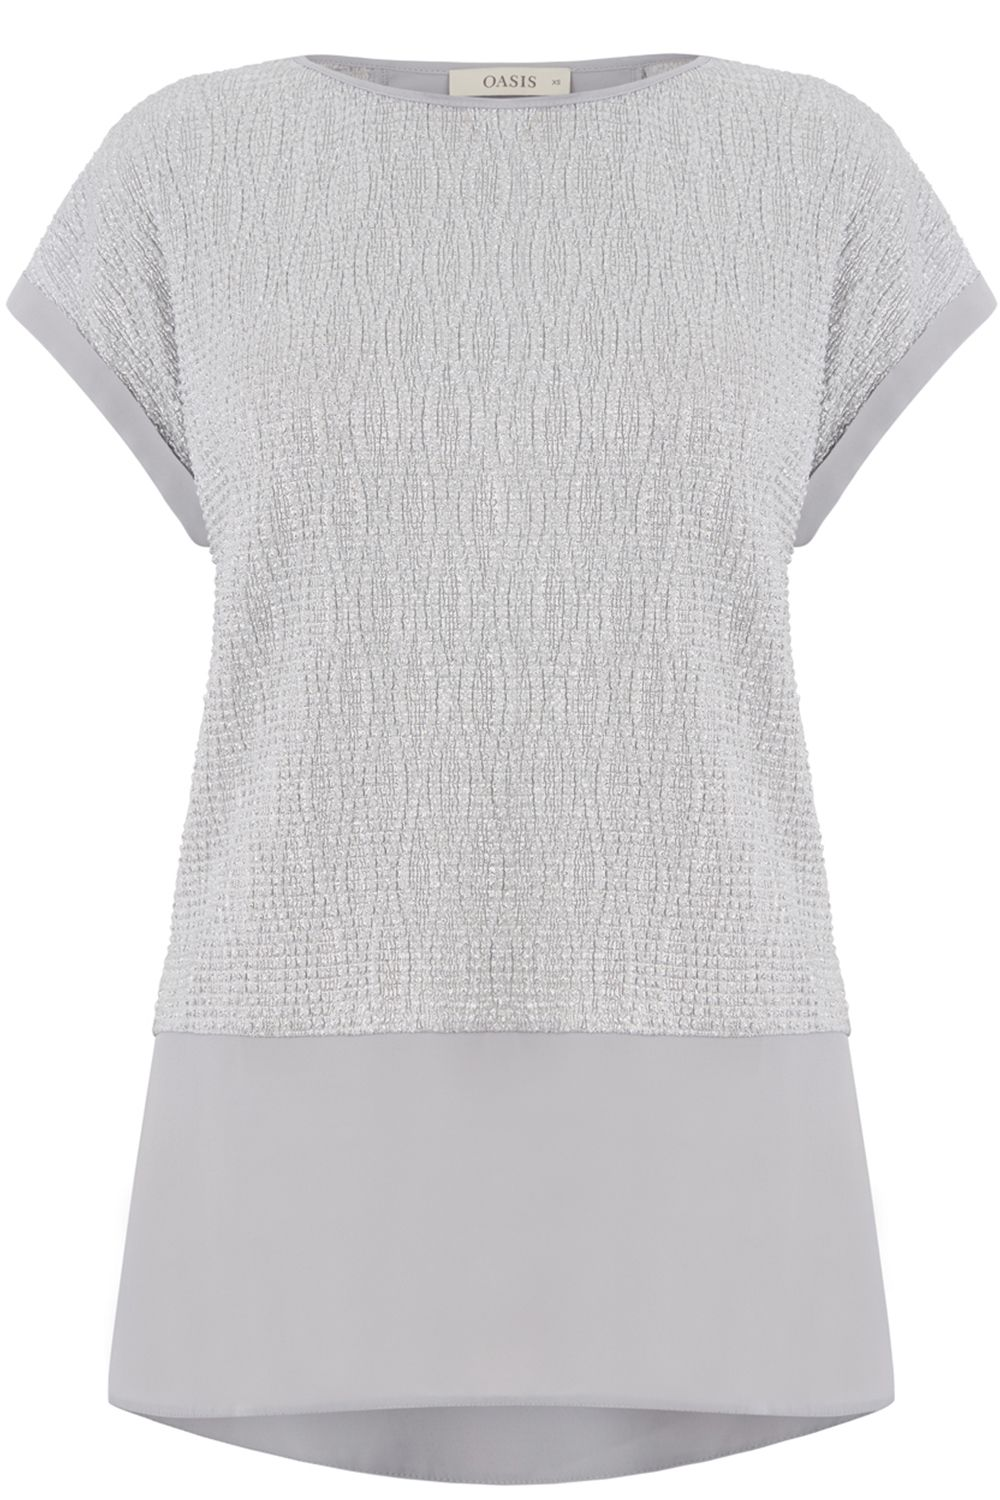 Oasis Crinkle Double Layer Tee, Silver